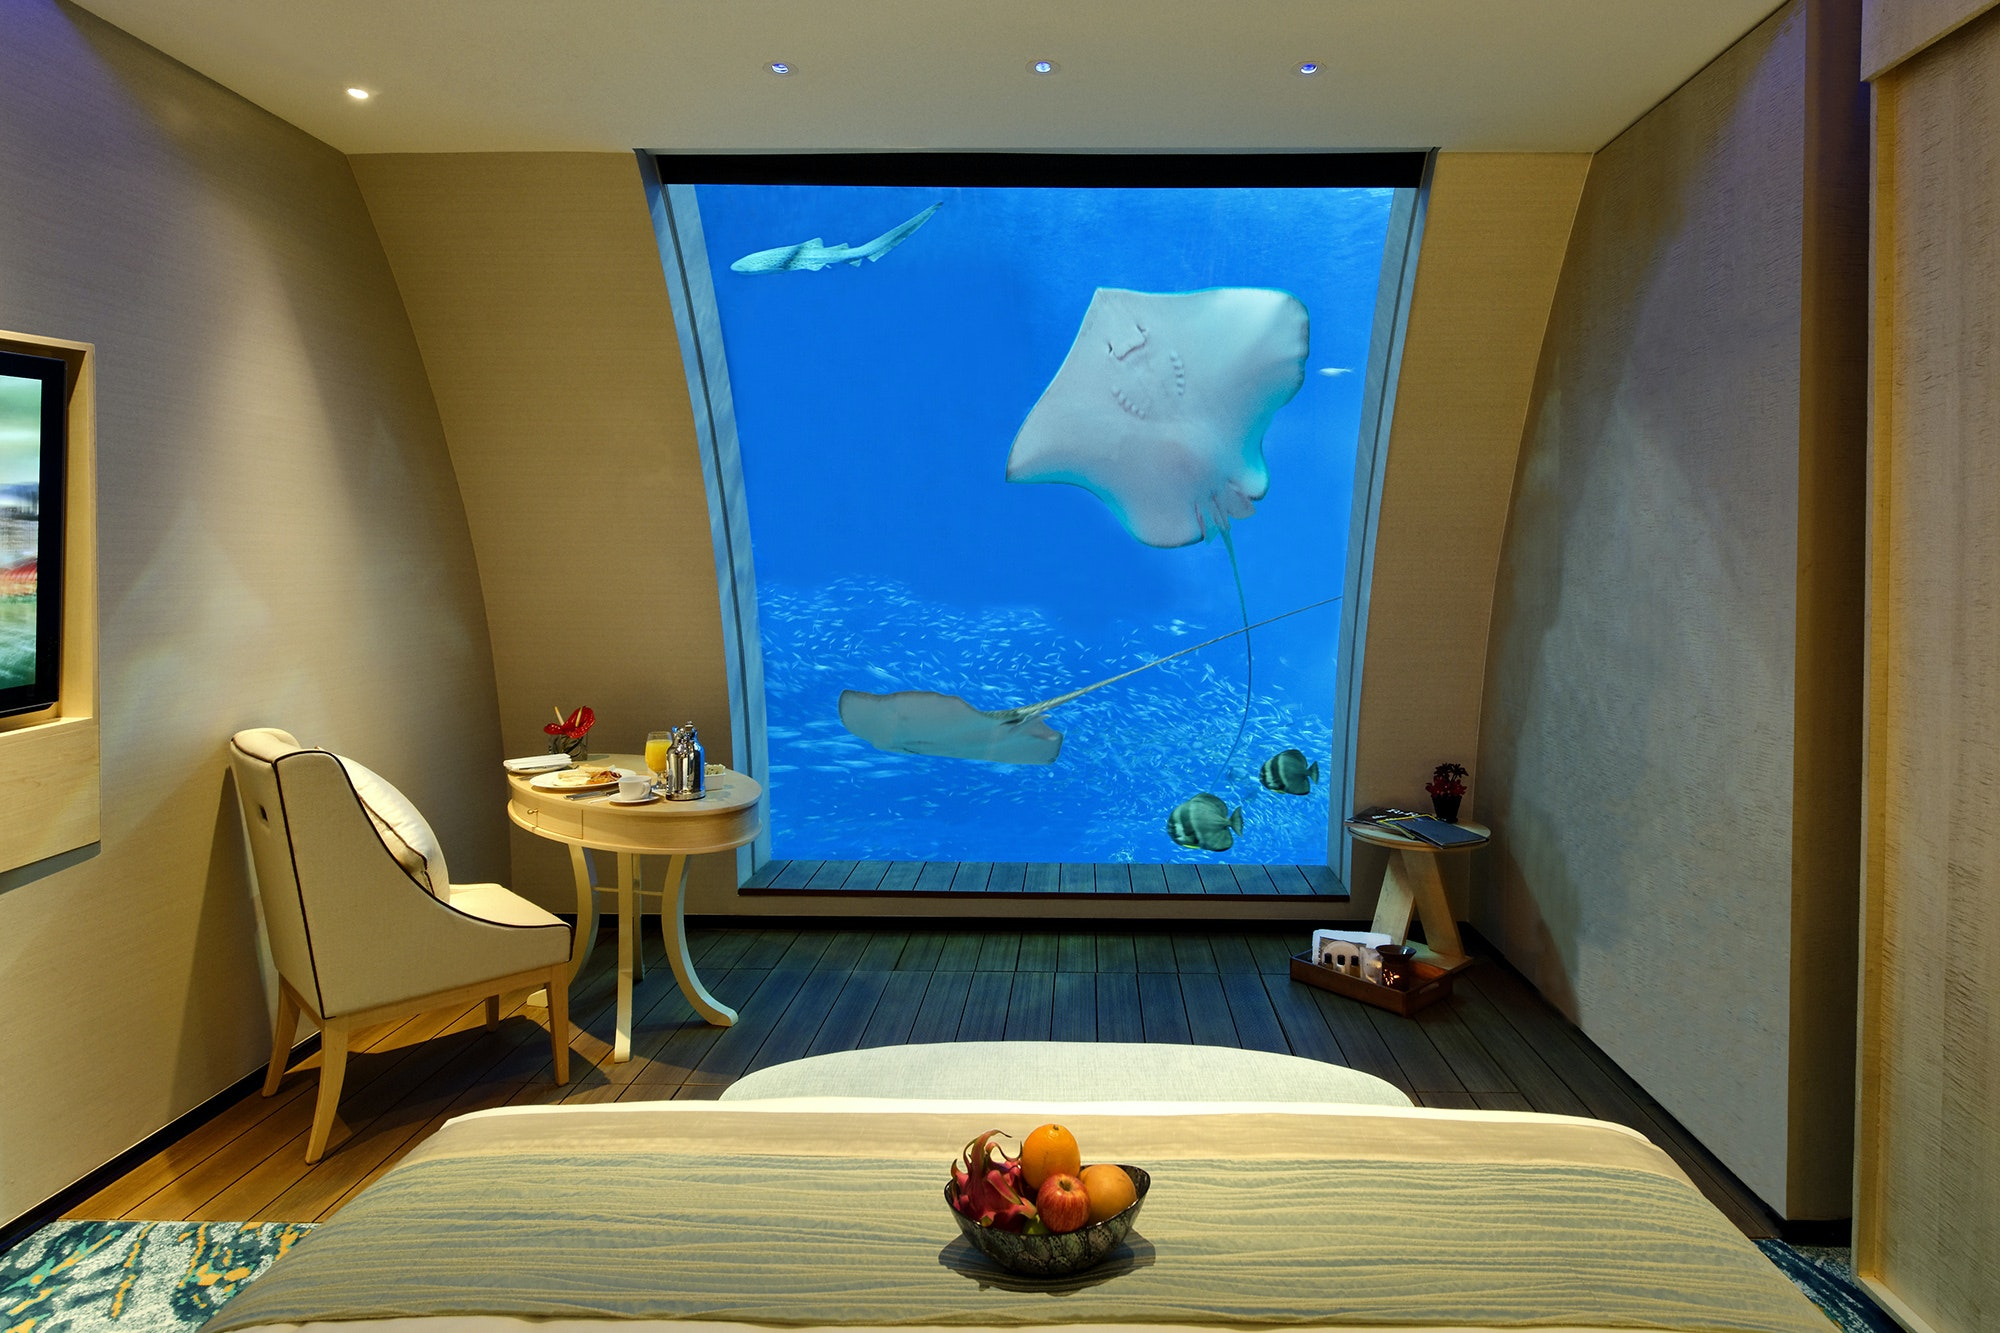 The Ocean Suites at Resorts World Sentosa have sunken bathtubs in front of the viewing window.